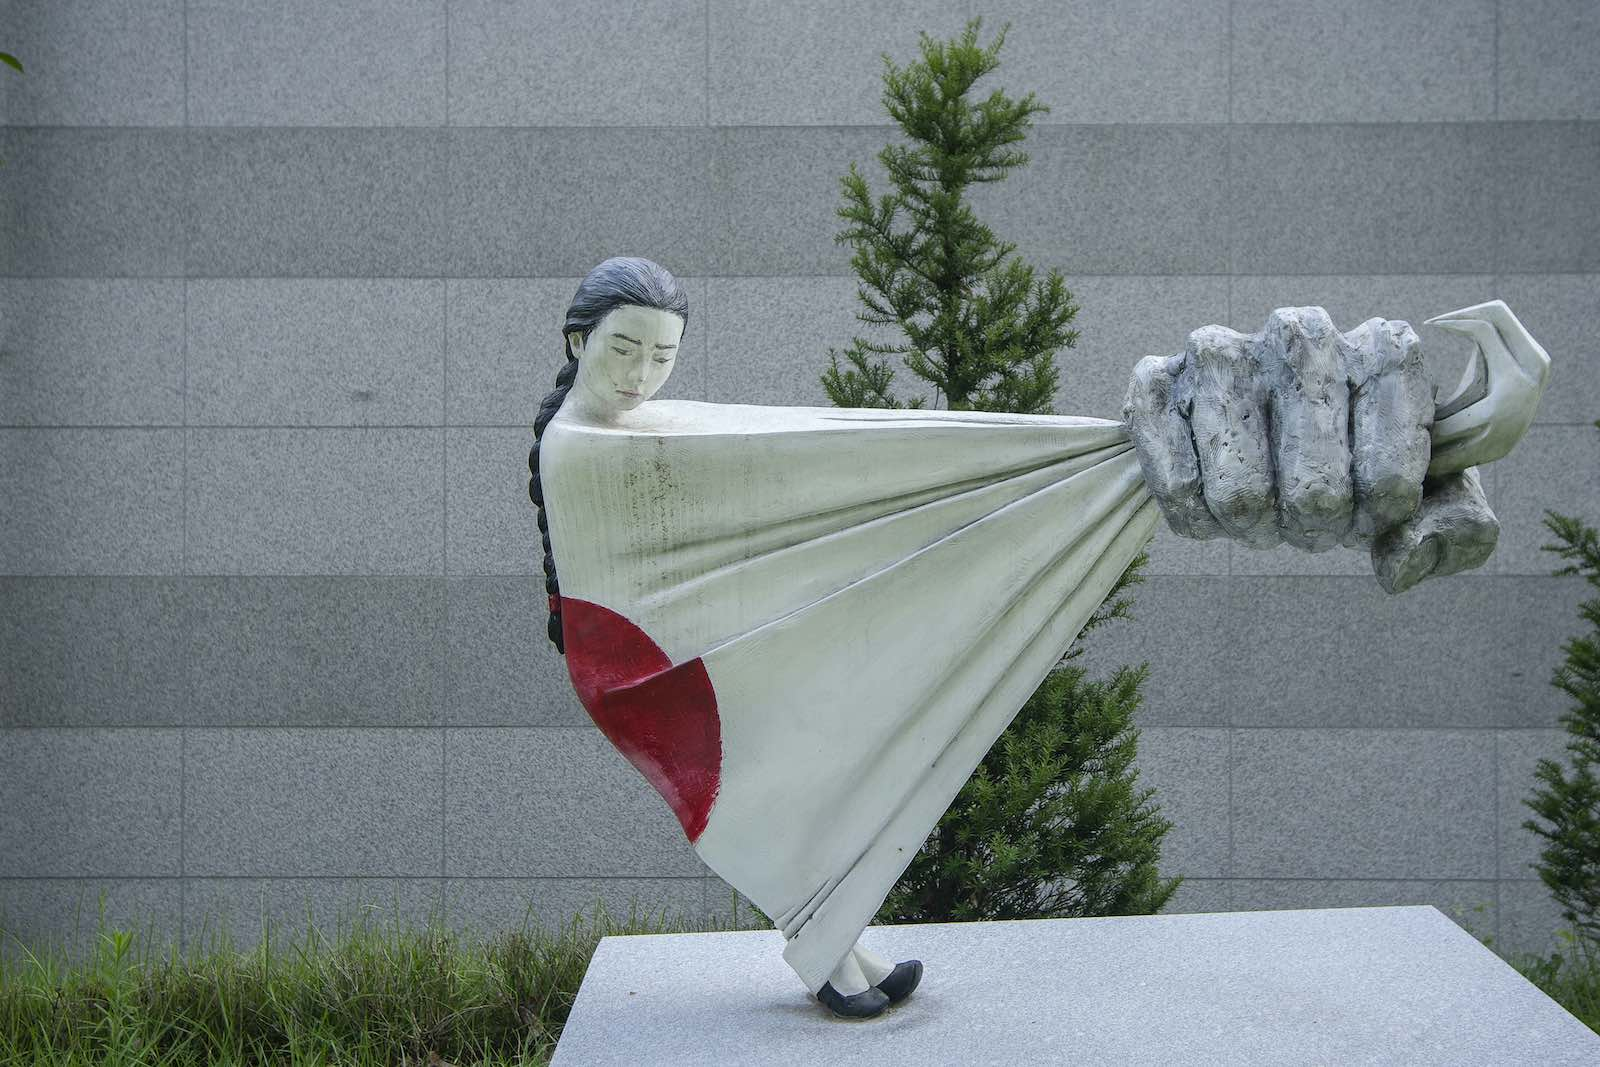 """A sculpture to memorialise the """"comfort women"""" of the Second World War at Memorial Park of Sharing House in Gwangju, South Korea (Seung-il Ryu/NurPhoto via Getty Images)"""